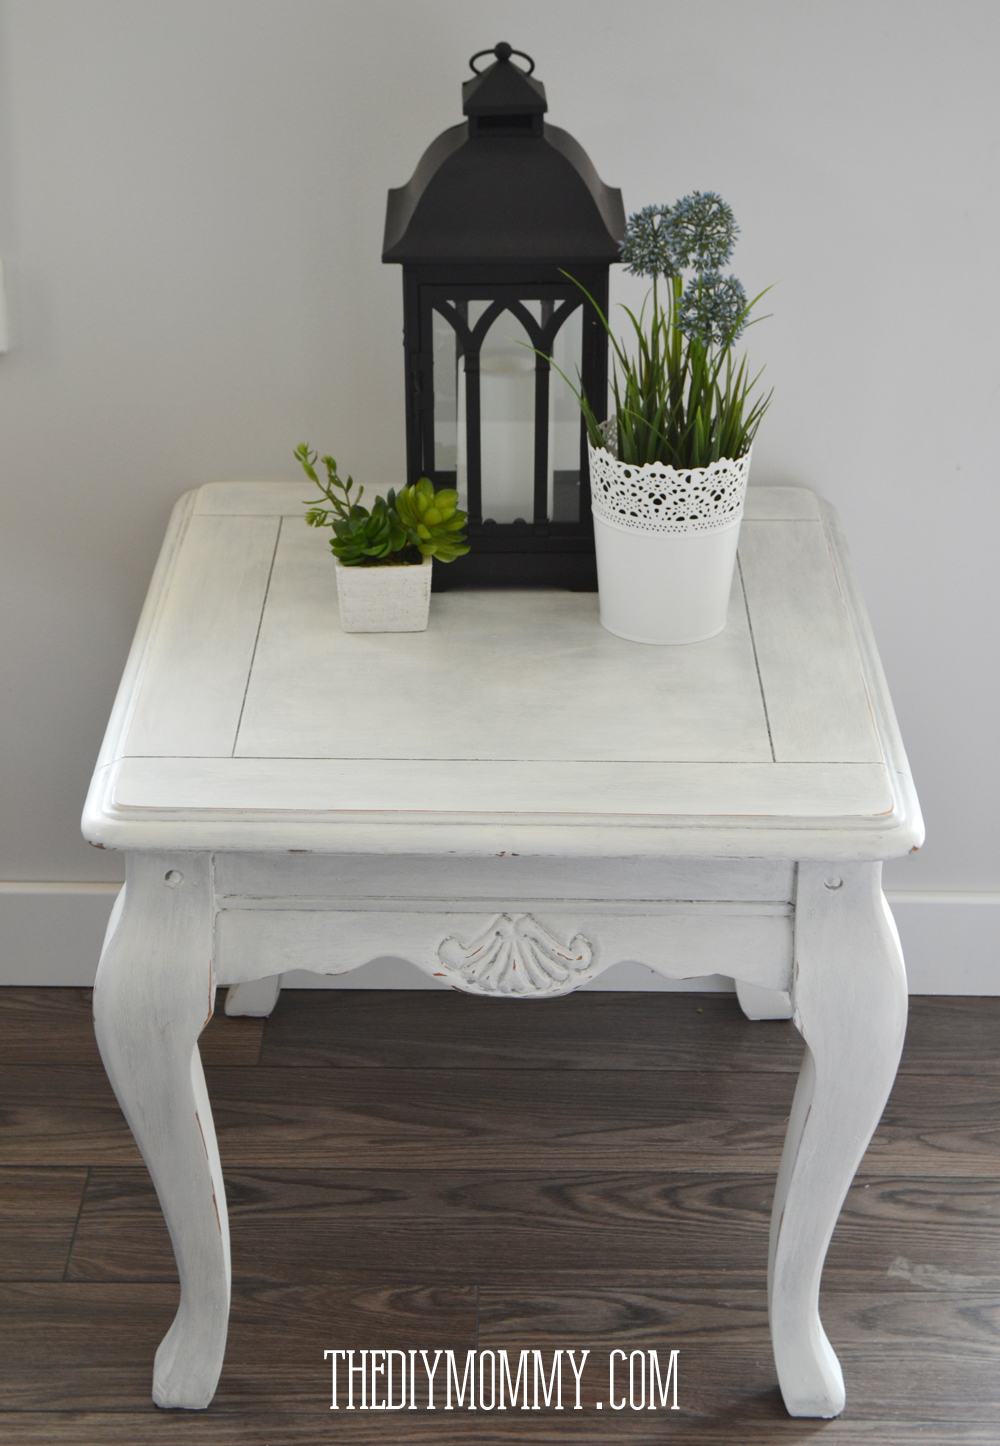 Make Diy Dark Or Coloured Wax My Upcycled Side Table The Diy Mommy